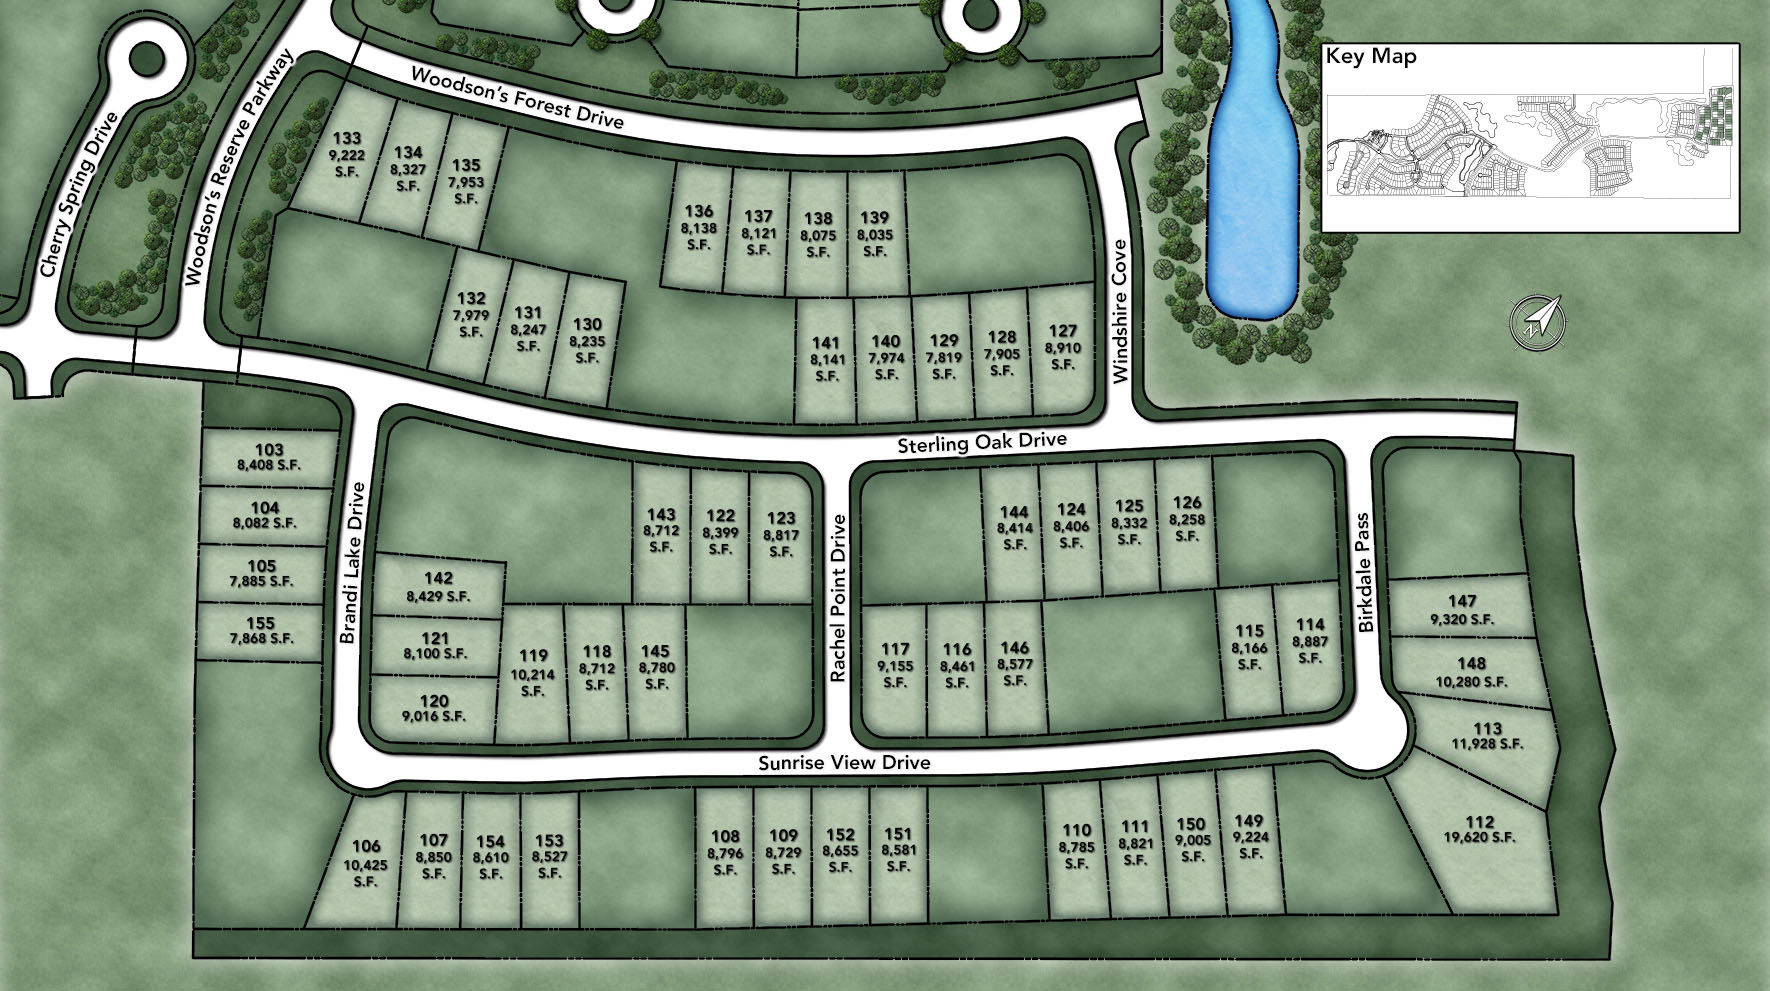 Woodson's Reserve - Select Collection - Sterling Oak Site Plan